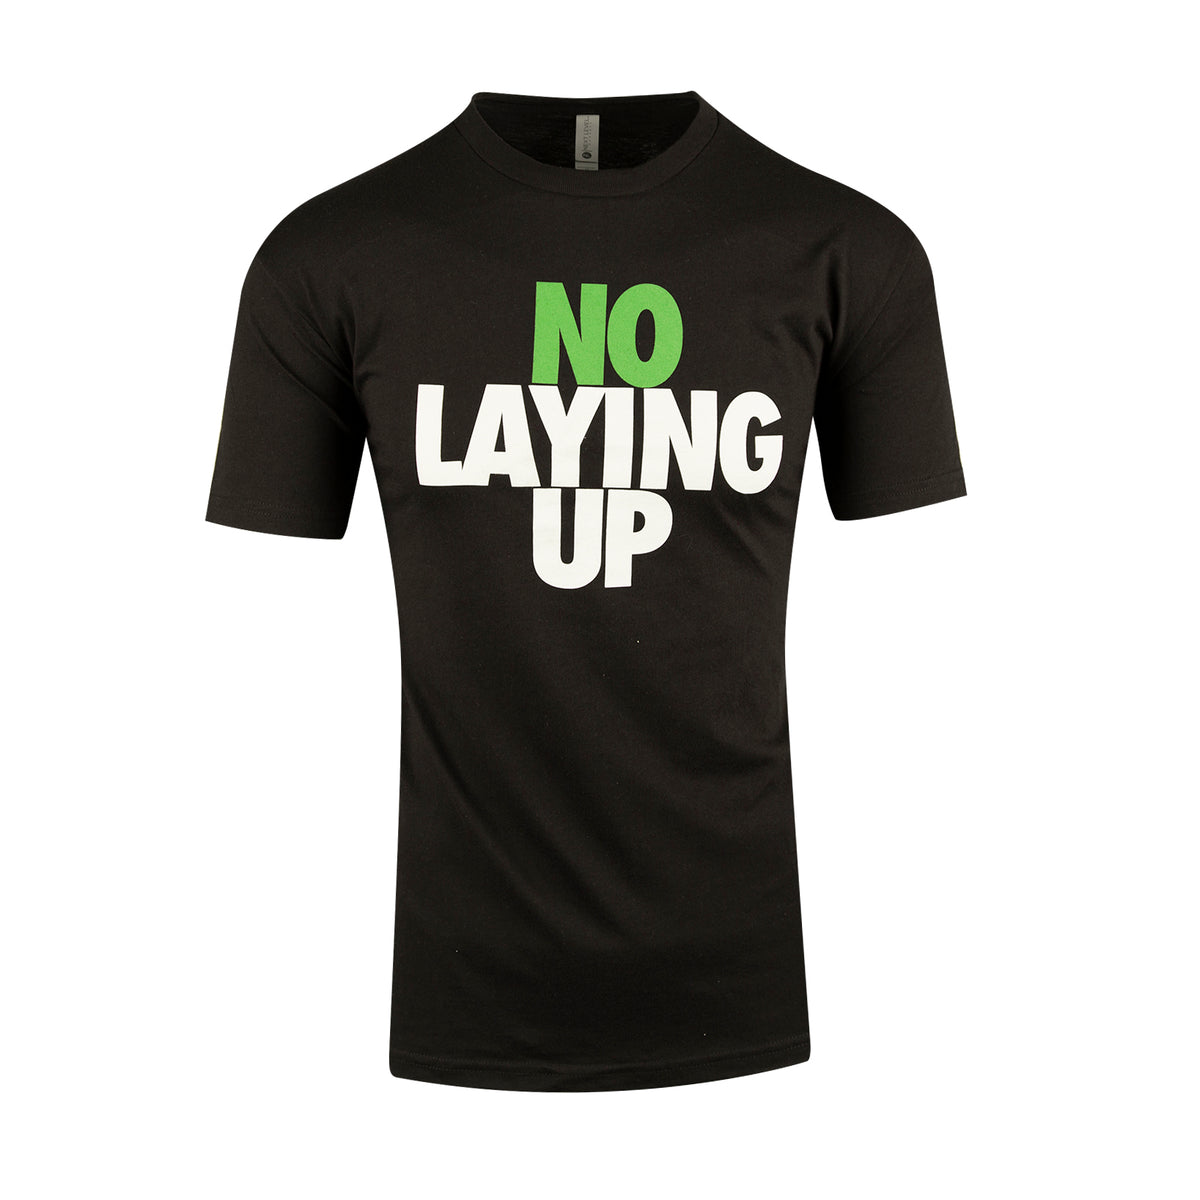 no-laying-up-black-t-shirt-with-green-and-white-logo